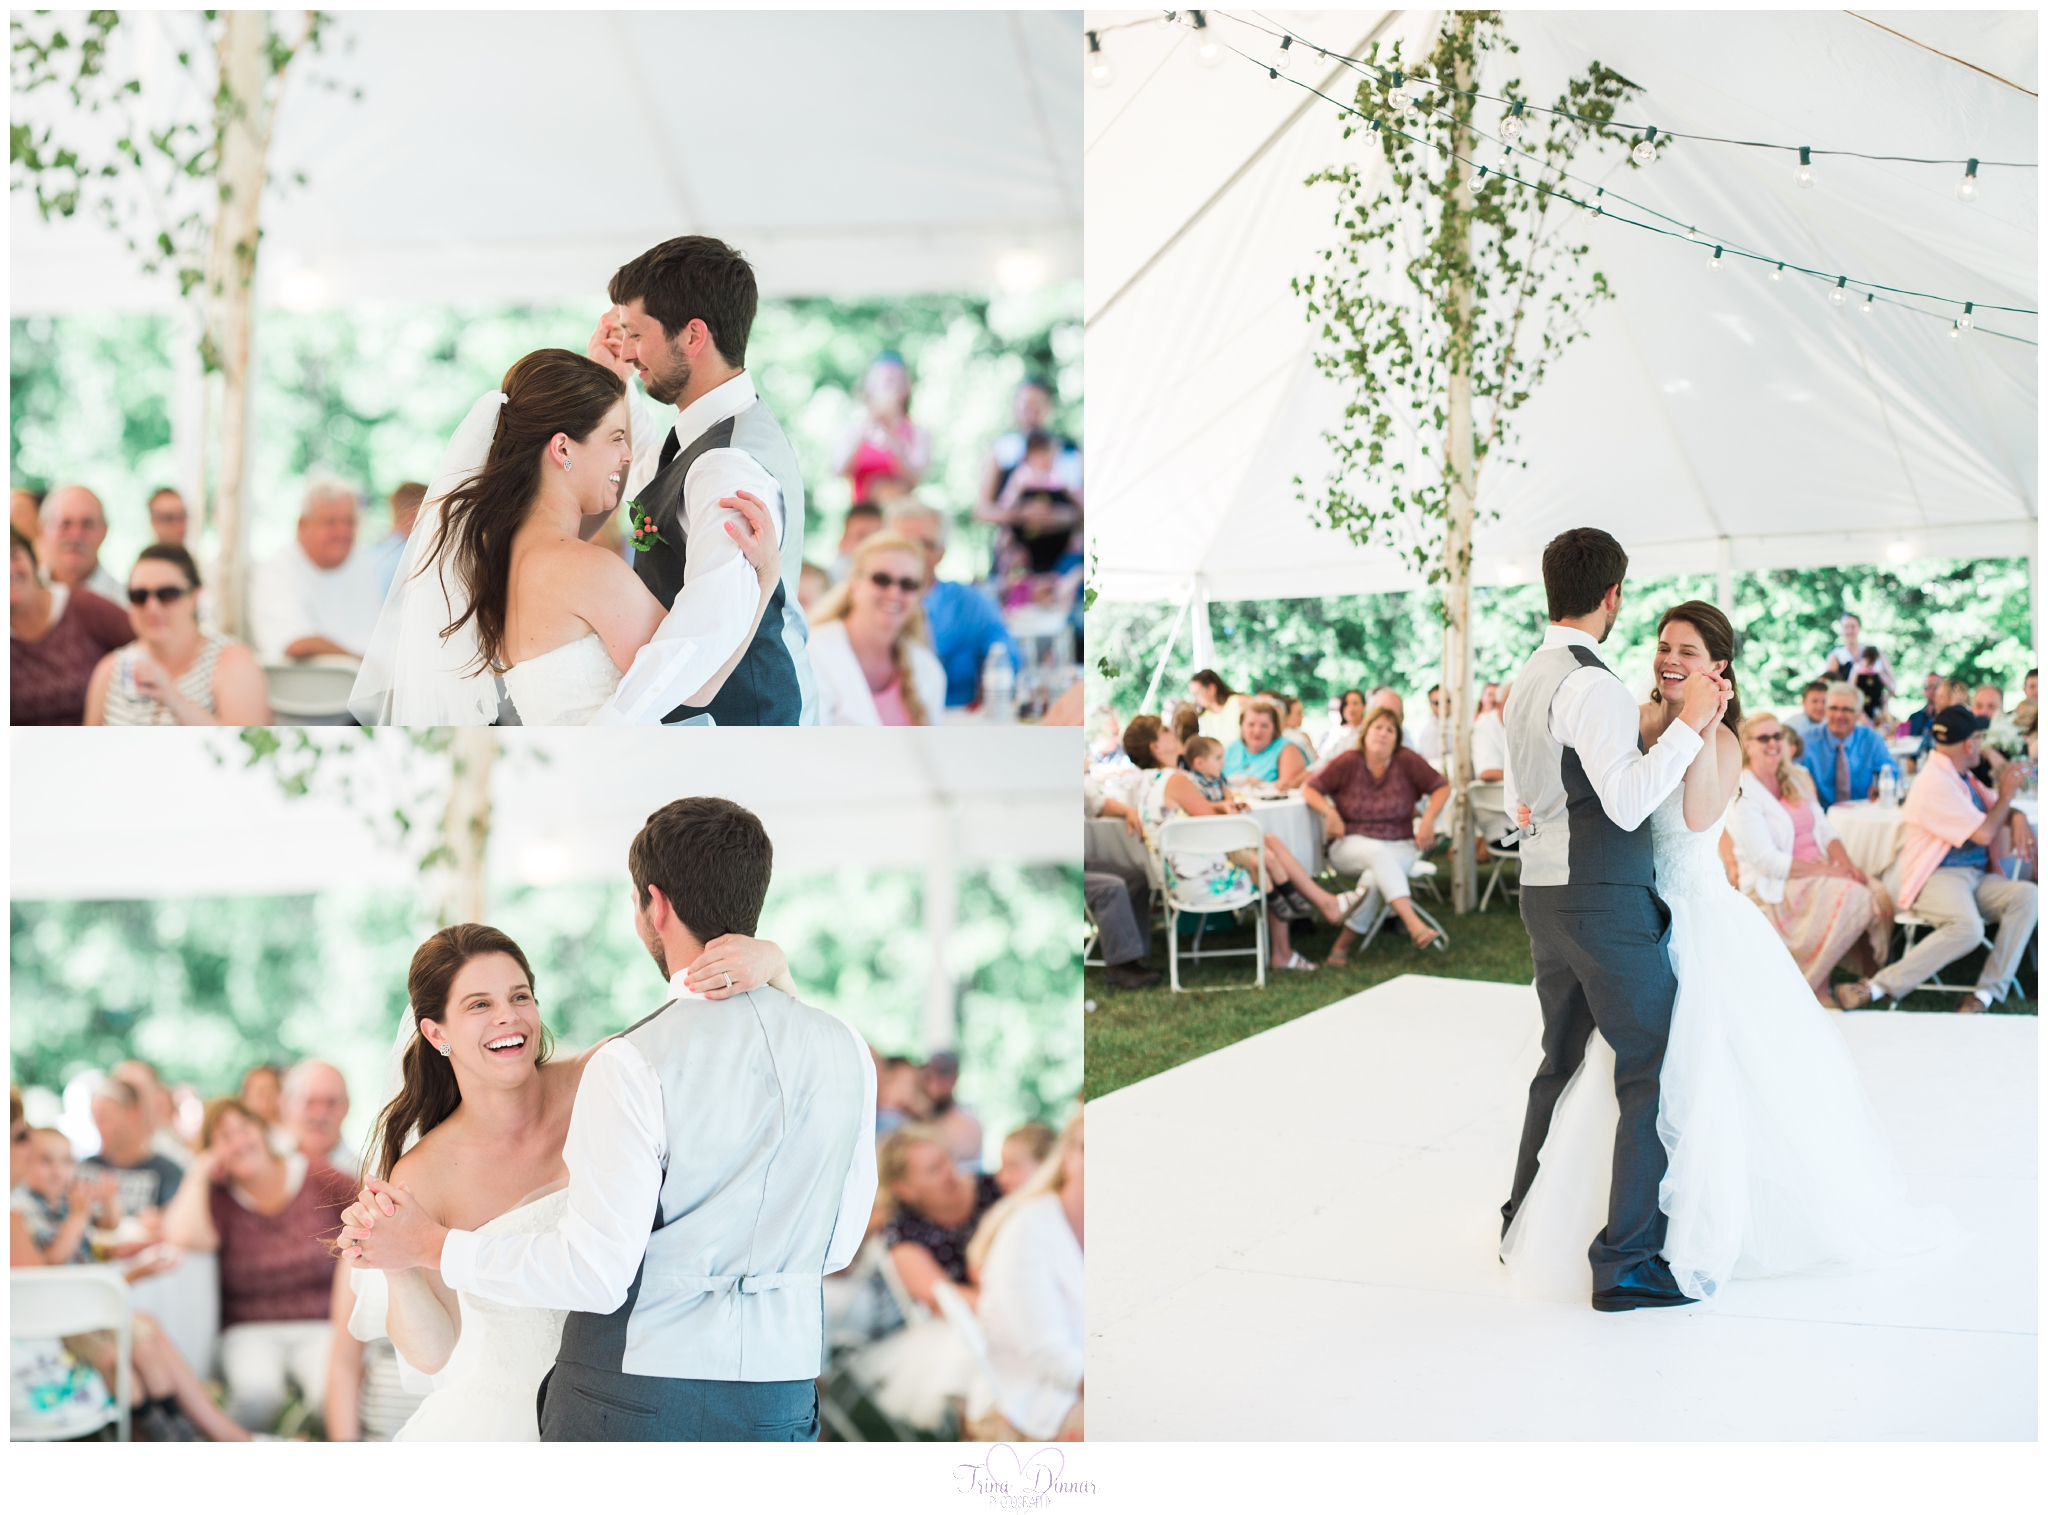 First dance at Worthley Farm tented wedding reception in Peru, Maine.